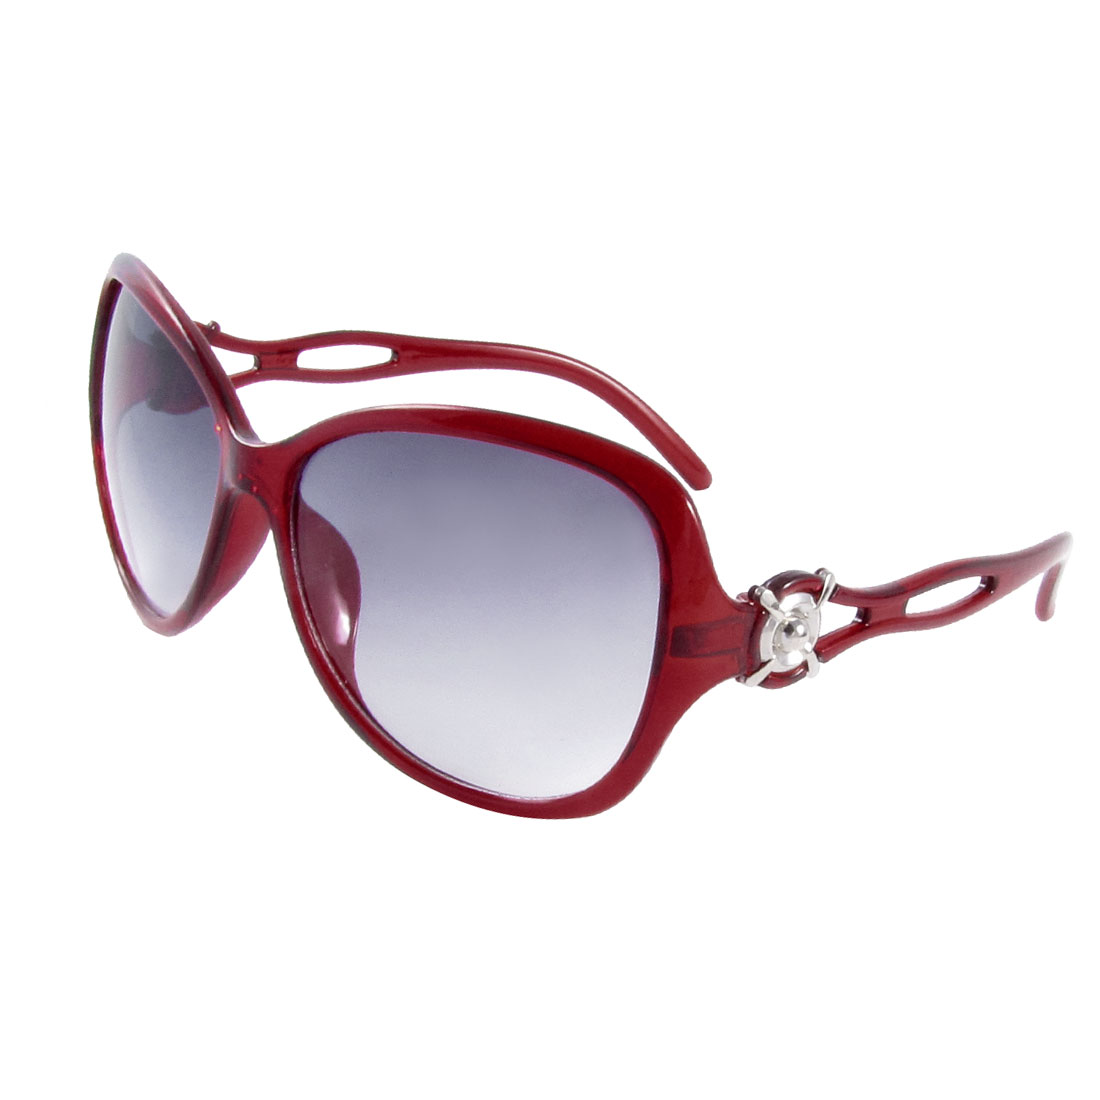 Outside Round Colored Lens Full Frame Sunglasses Clear Carmine for Ladies